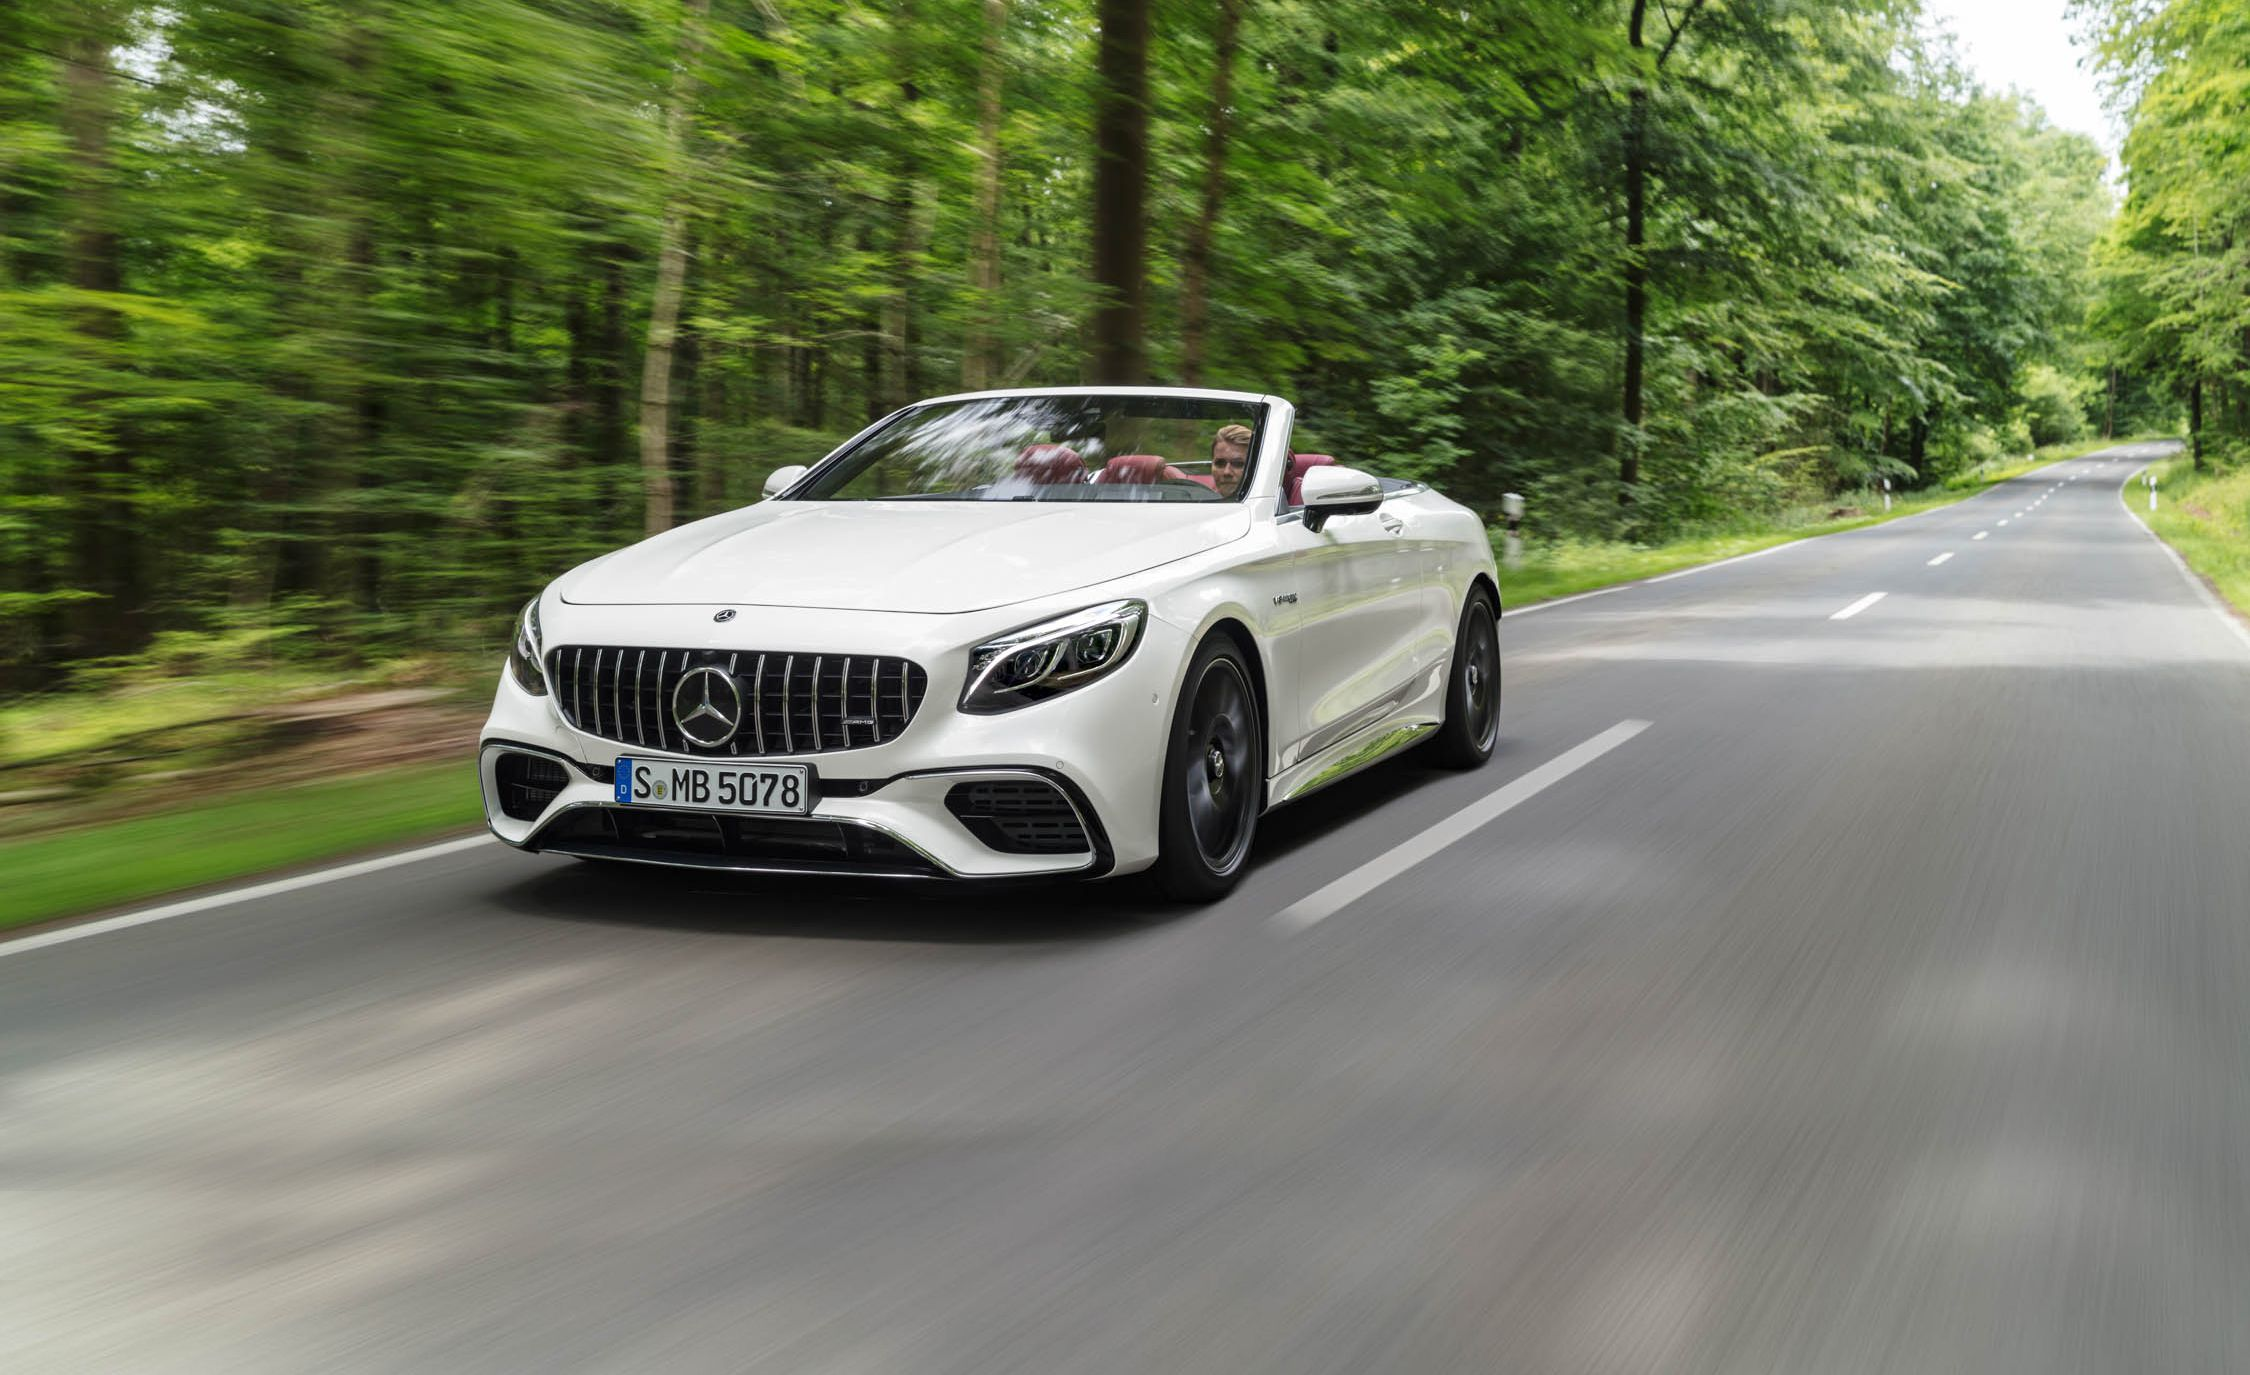 Mercedes-Benz S550 Convertible - Color | White